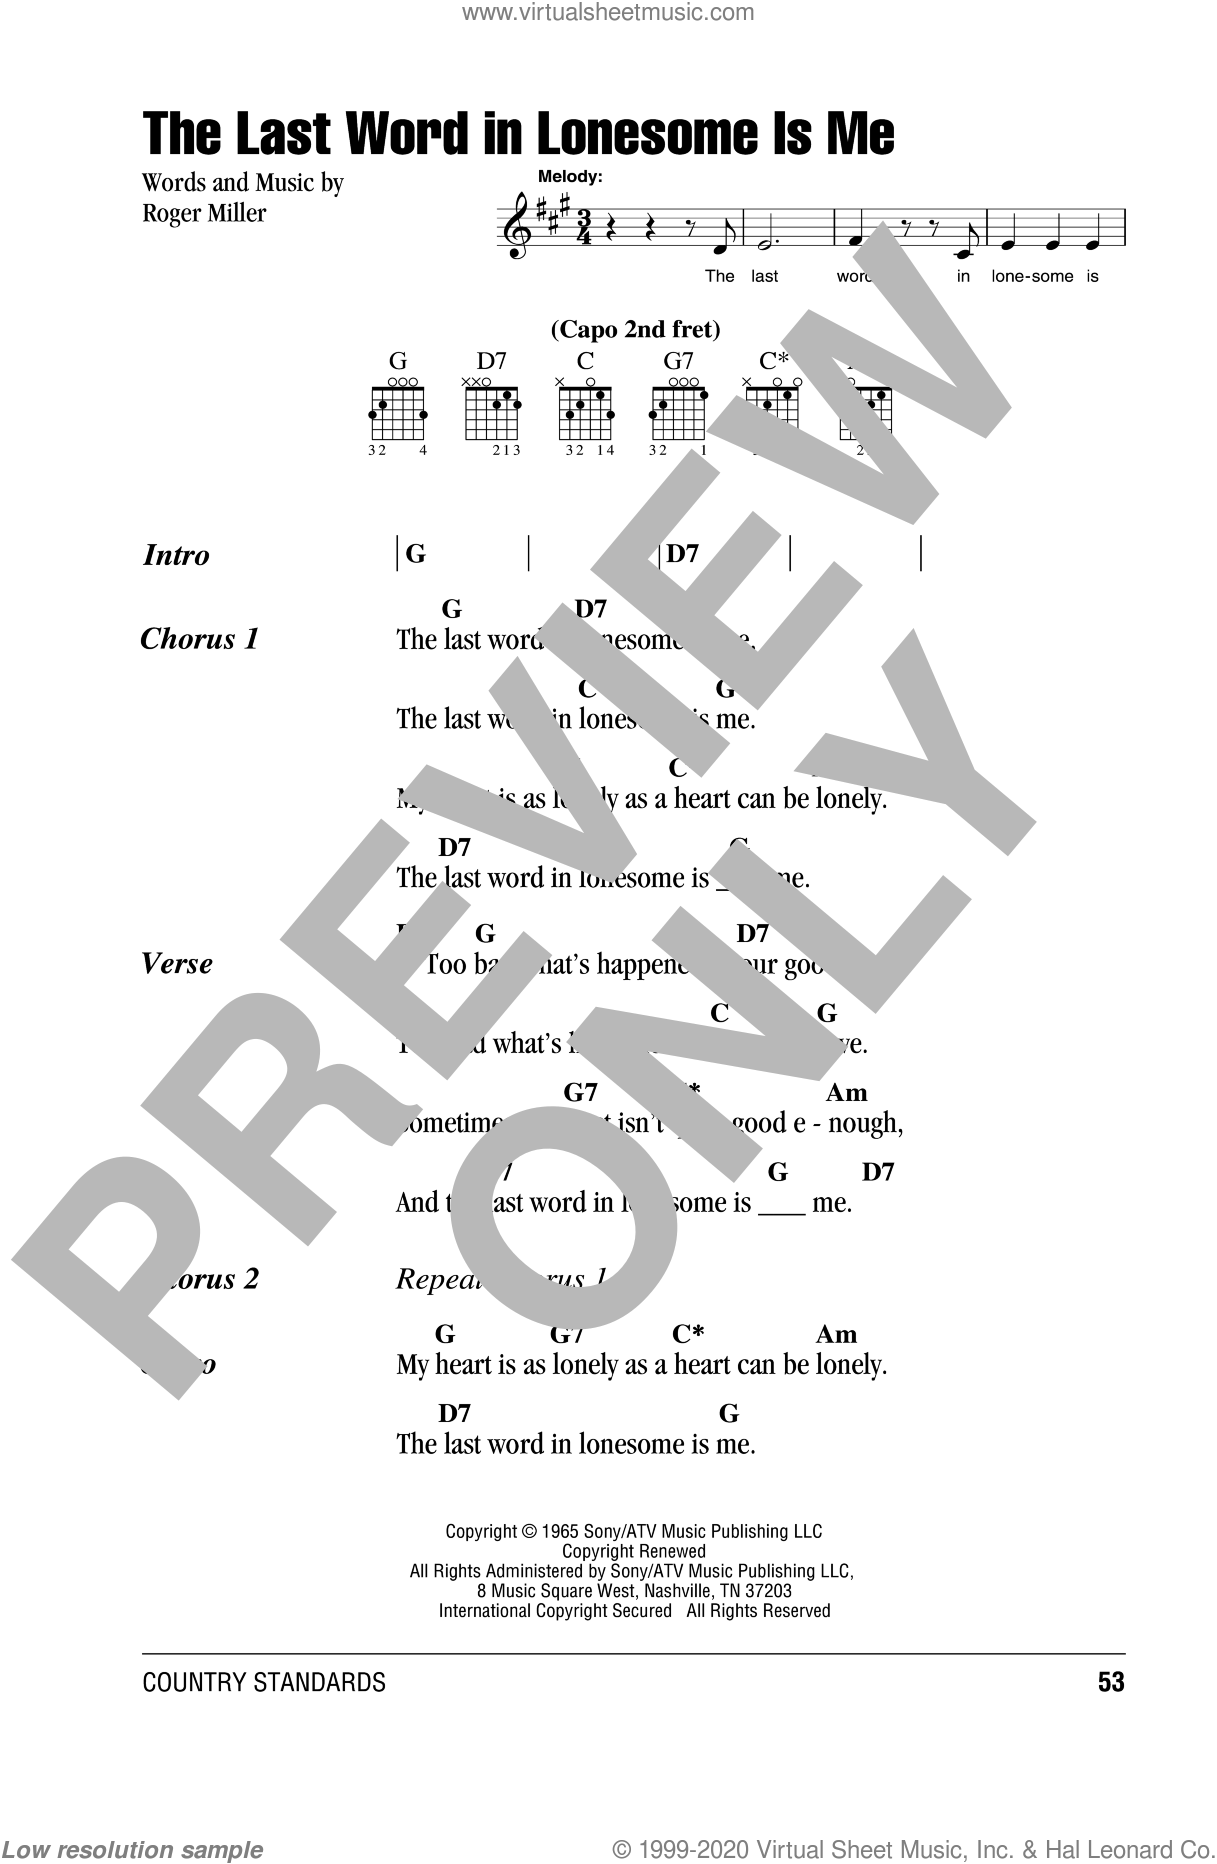 The Last Word In Lonesome Is Me sheet music for guitar (chords) by Eddy Arnold and Roger Miller, intermediate skill level